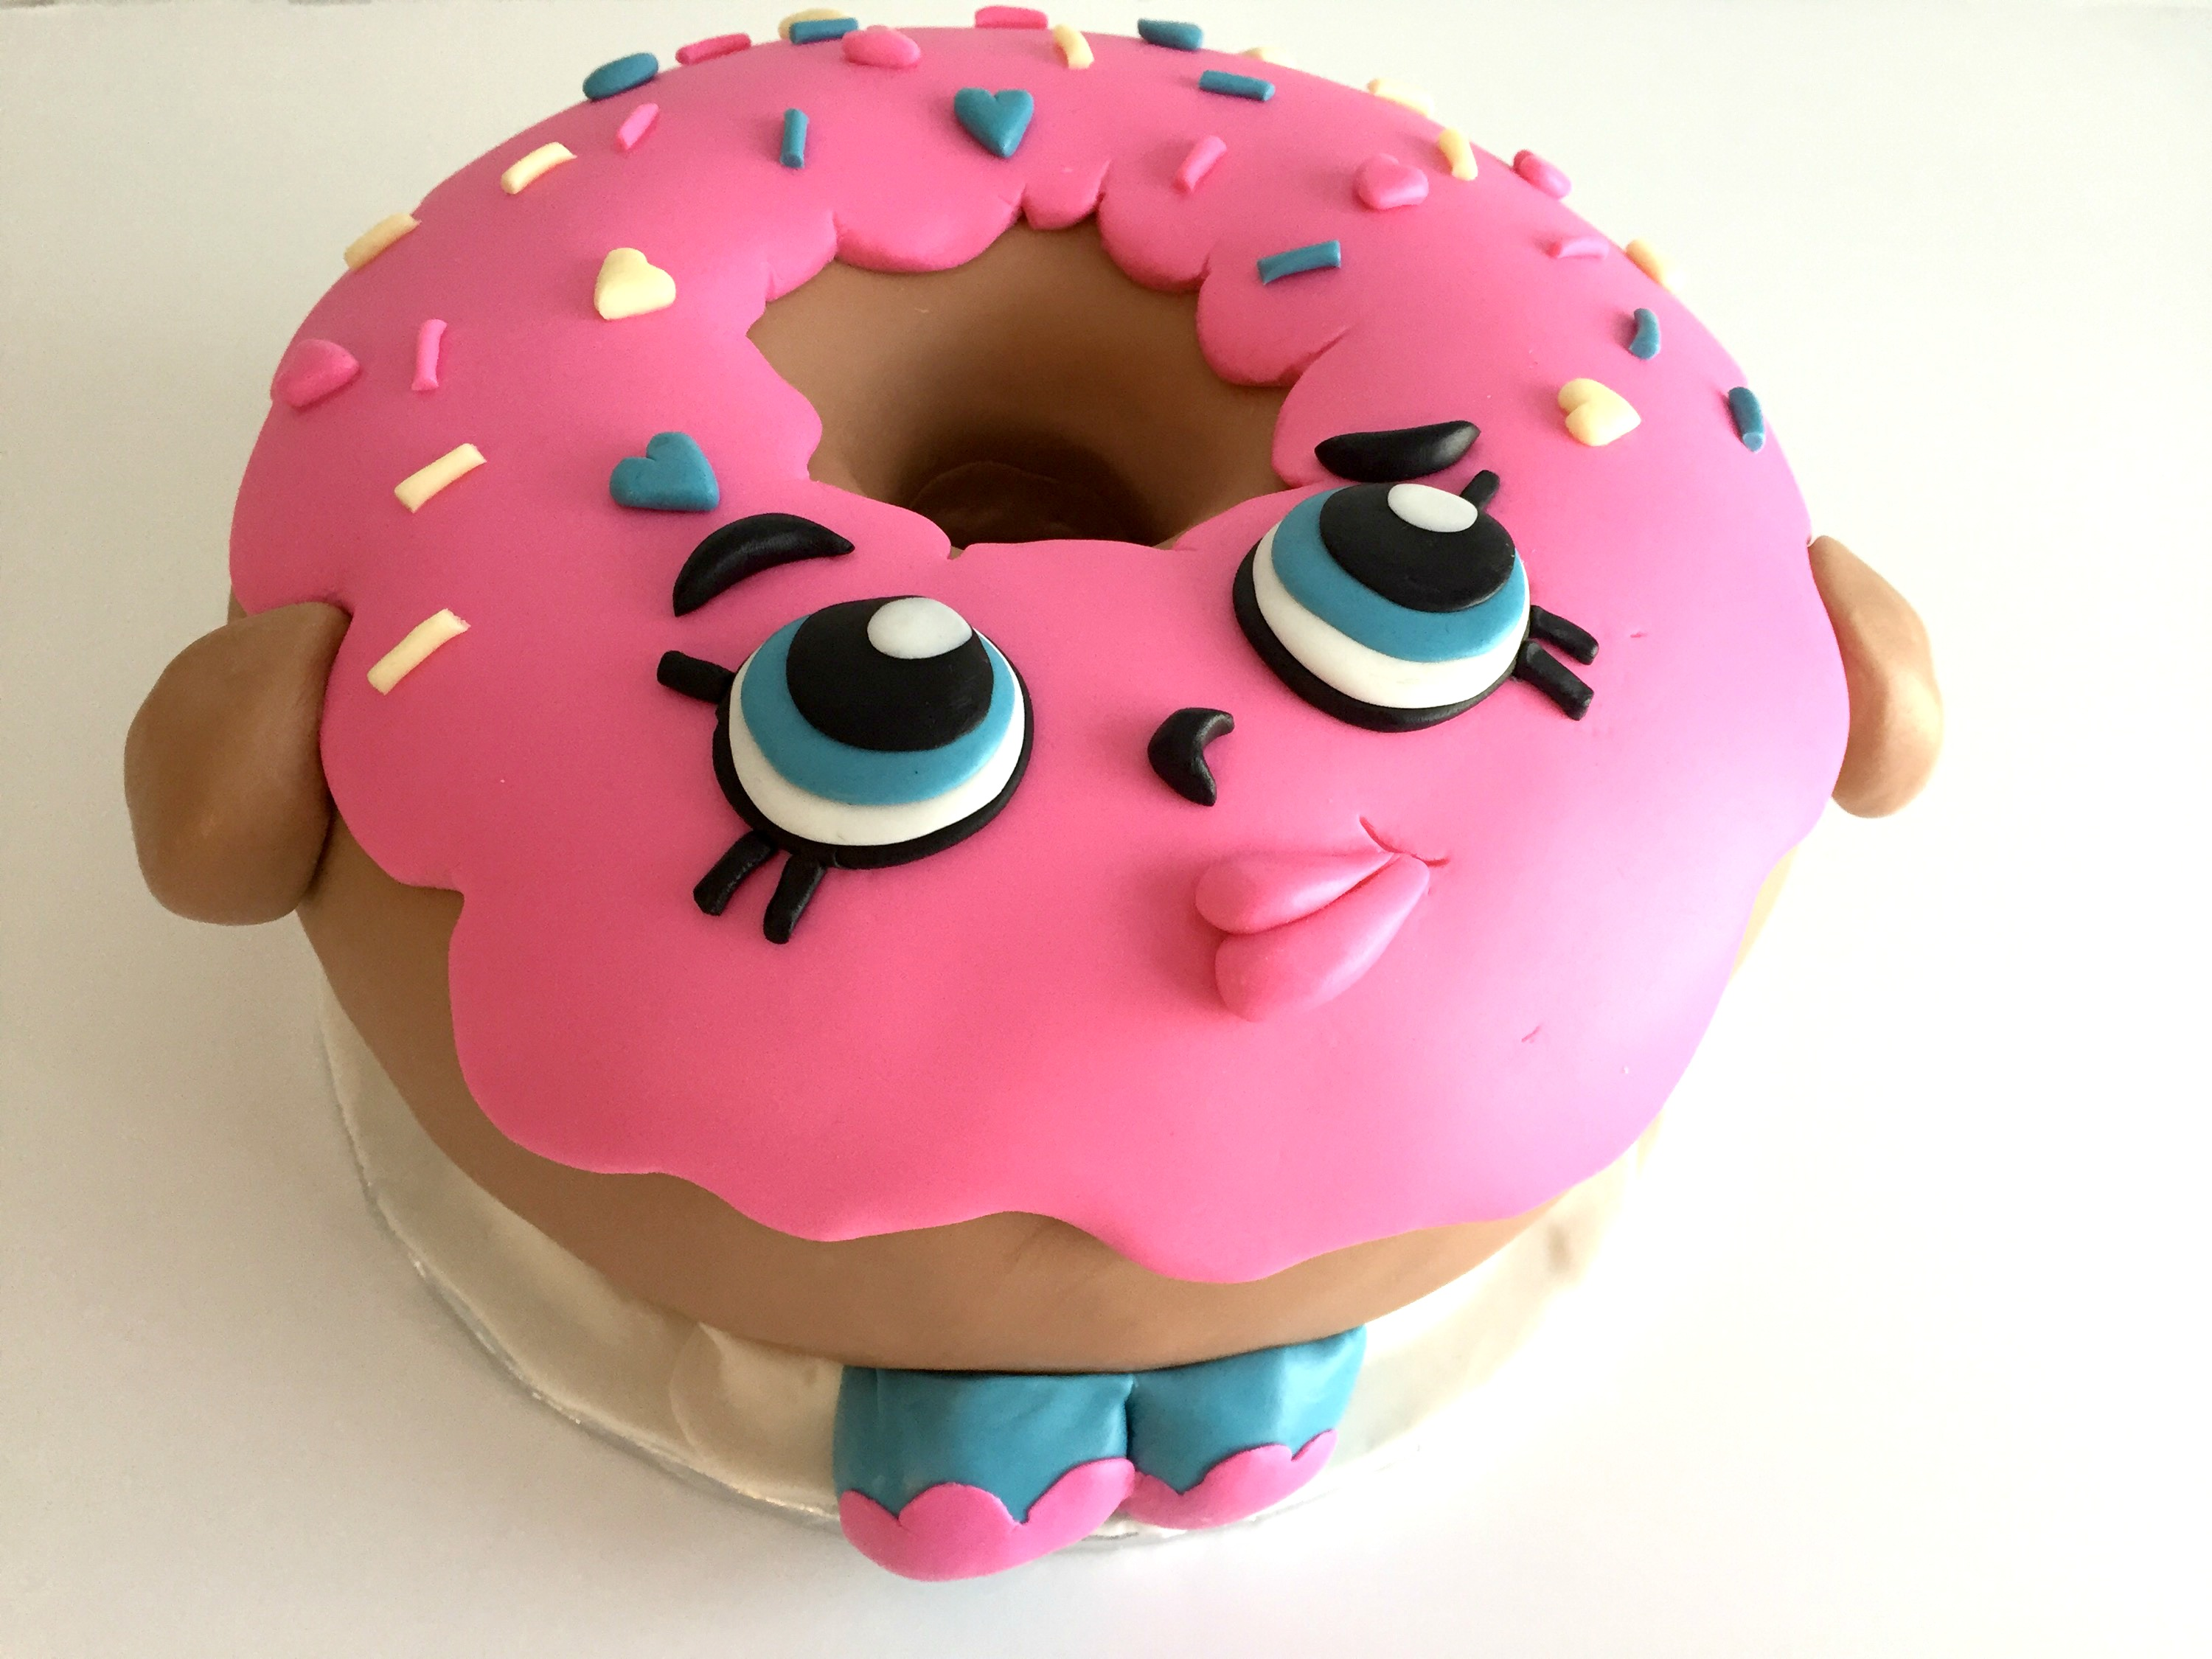 10 Adorable Shopkins Cakes That Will Wow Your Guests Pretty My Party